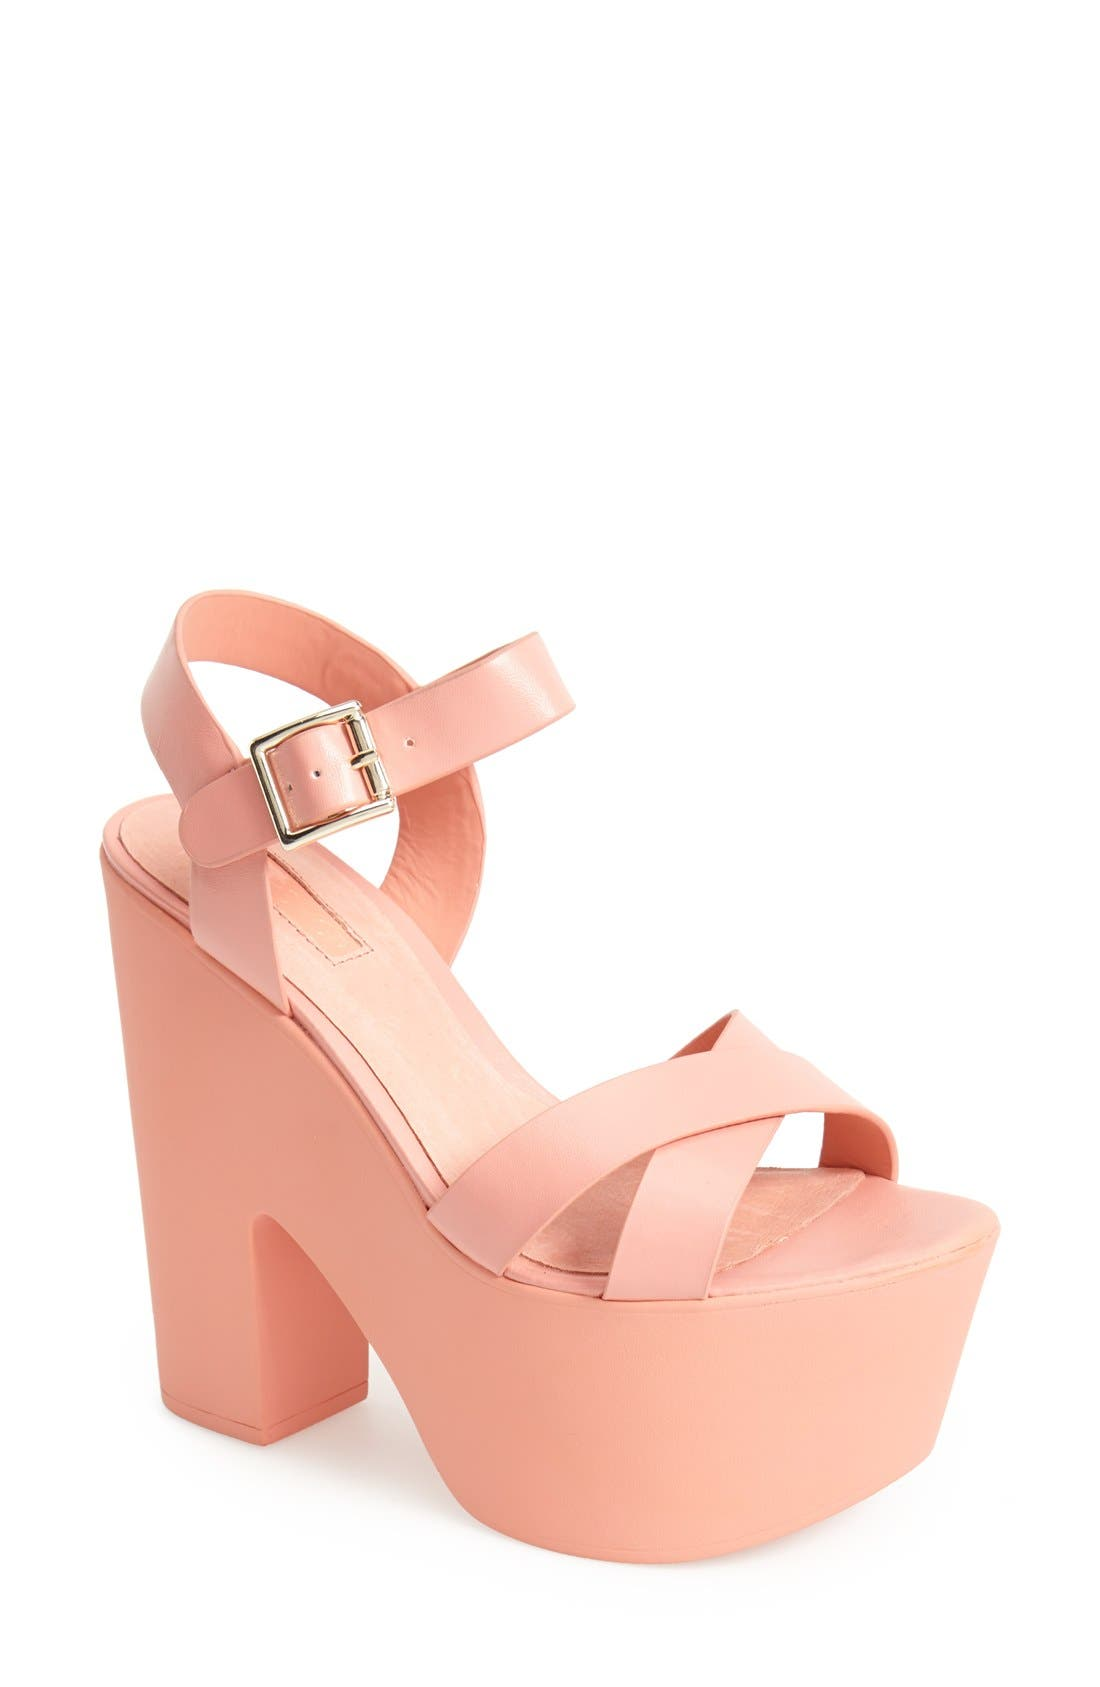 Alternate Image 1 Selected - Topshop 'Launch' Ankle Strap Platform Sandal (Women)